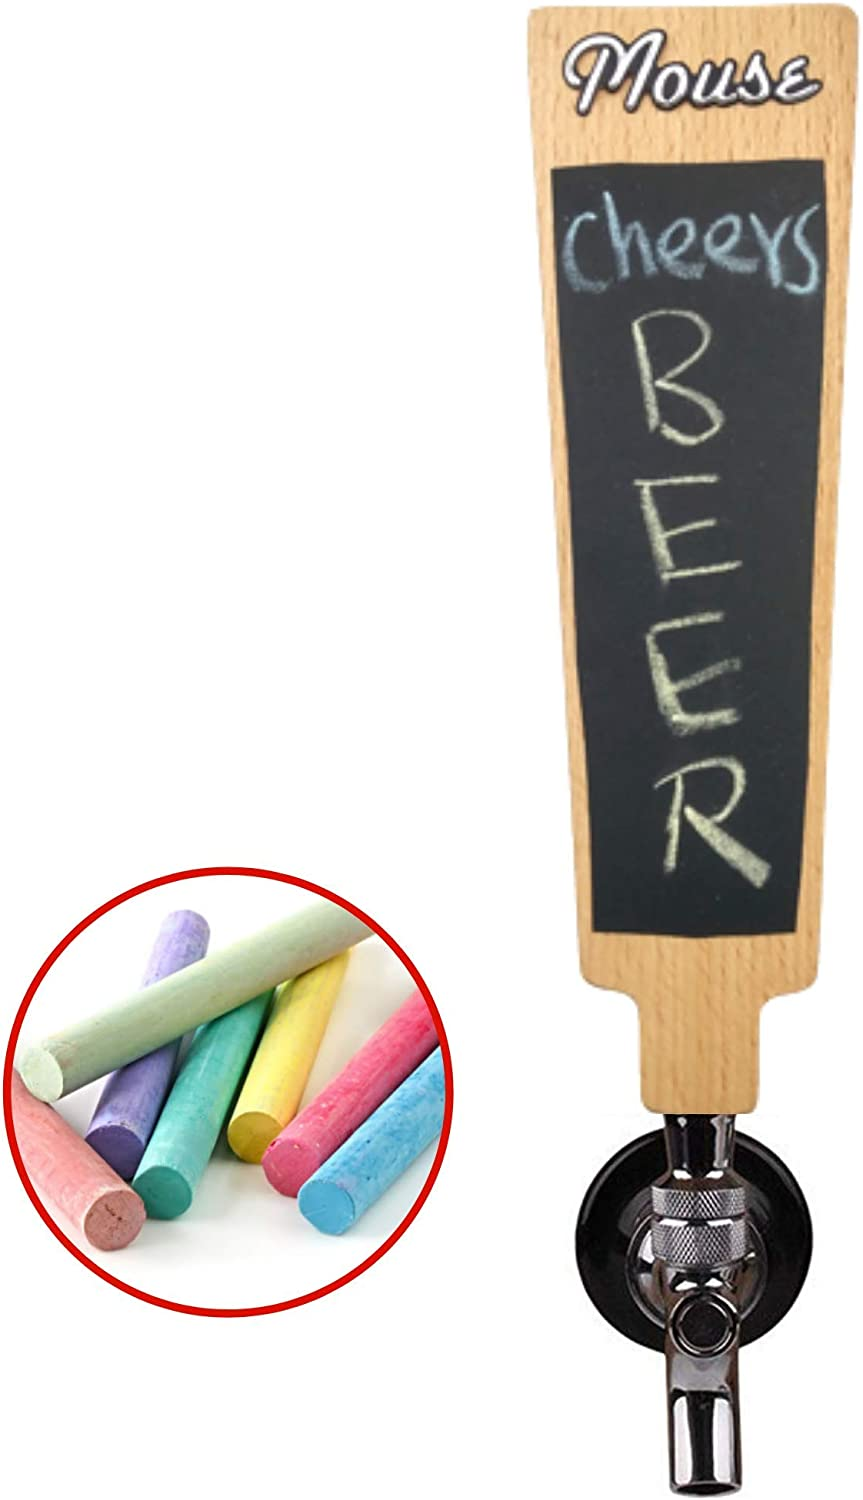 7.9 Tall Chalk Set Included Universal Connection for Homebrewers and Busy Commercial Bars Red Oak Tools Carved Beer Tap Handle with Chalkboard and Replaceable header sticker